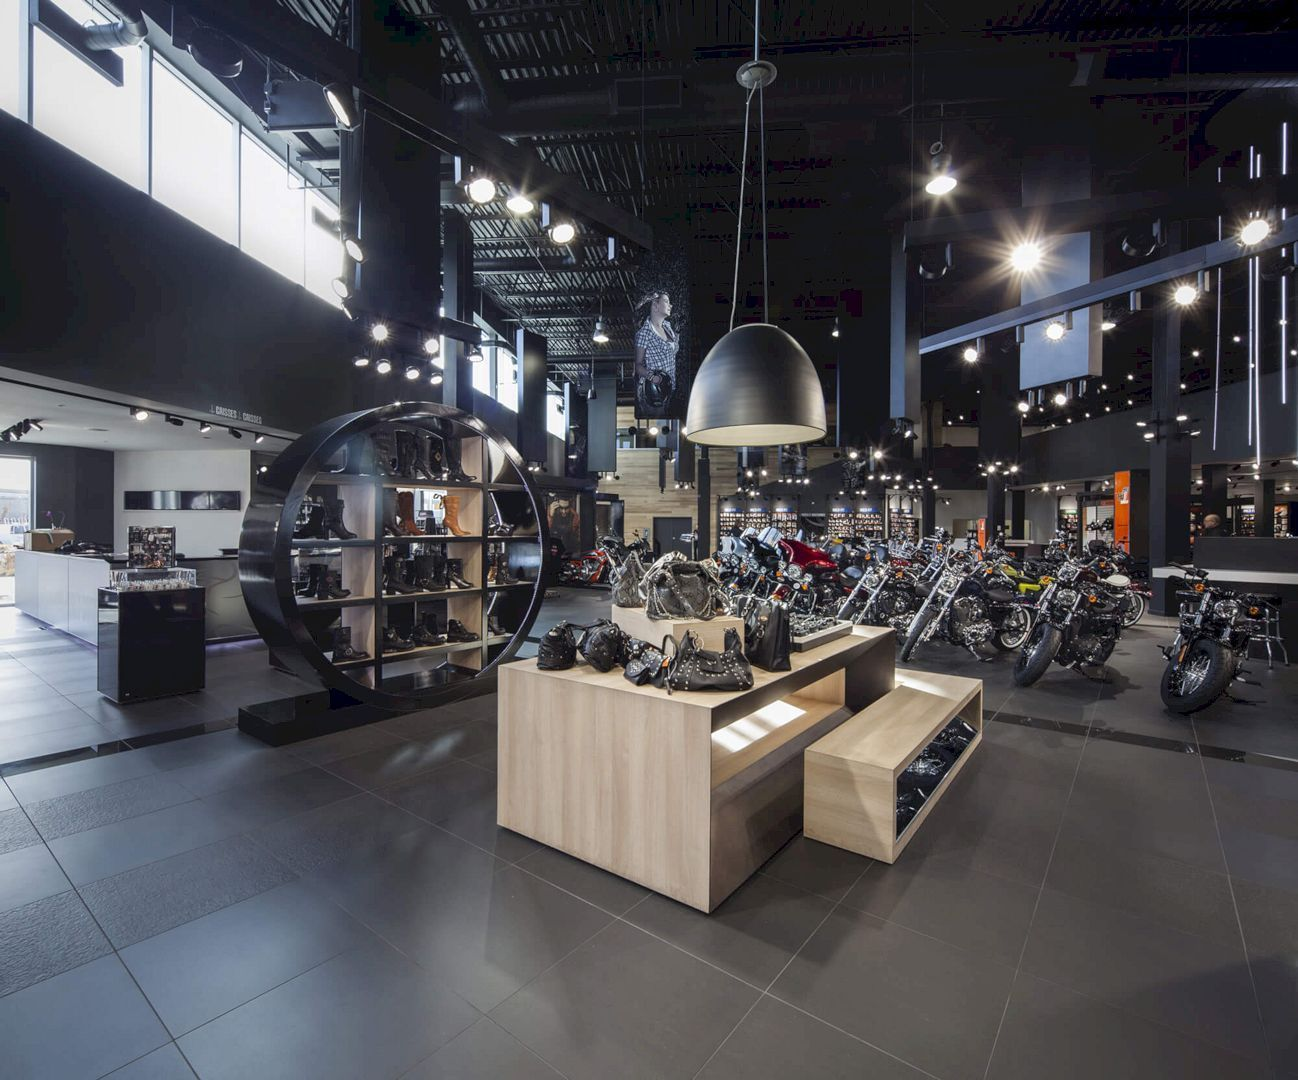 Premont Harley Davidson A New Construction Of An Iconic Large Building Showroom Design Harley Davidson Store Harley Davidson Shop